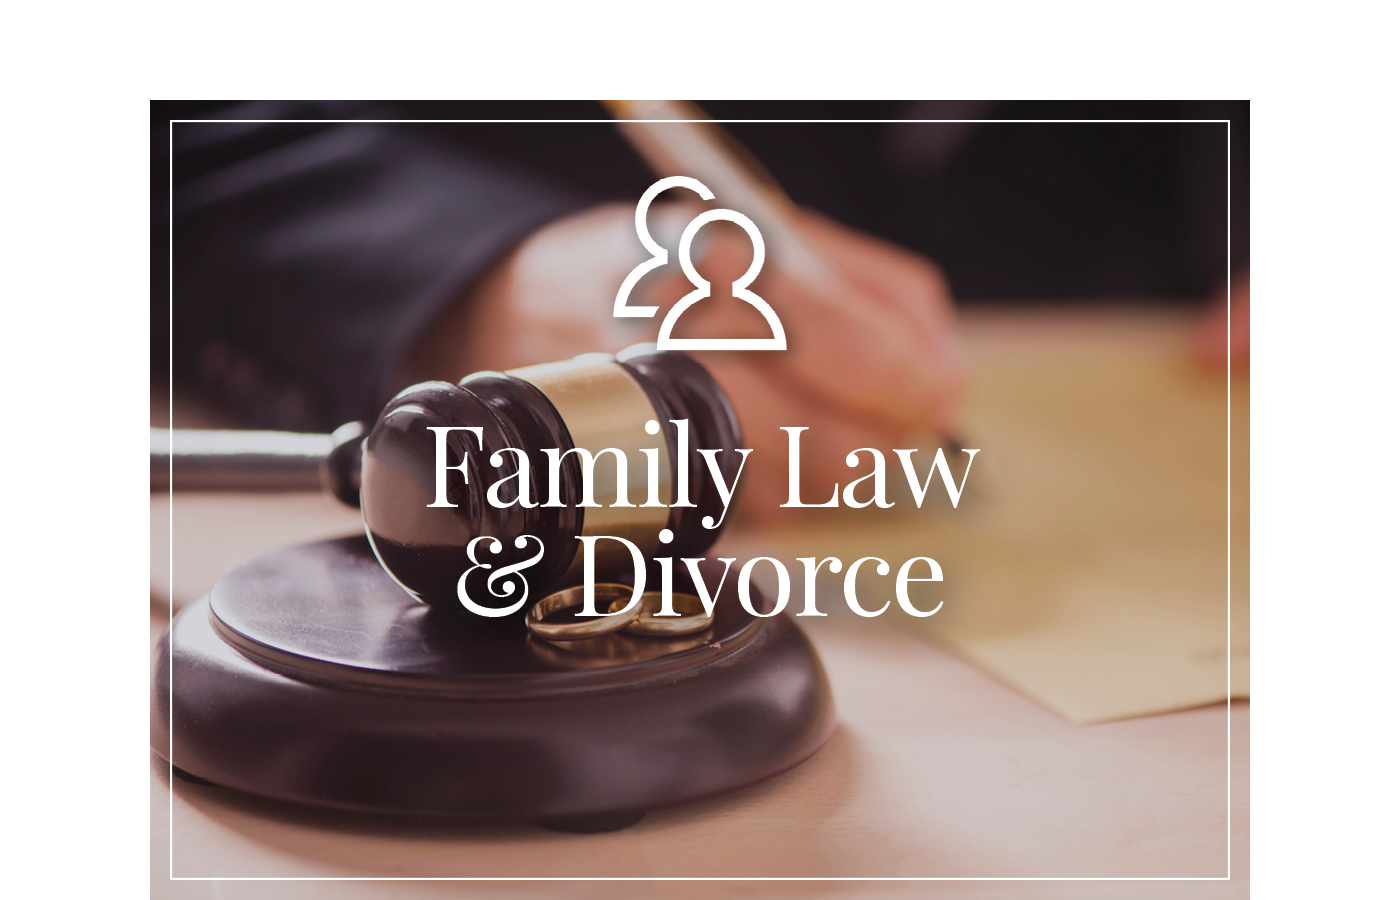 Family Law & Divorce Law services from David Saxe of Saxe Law.